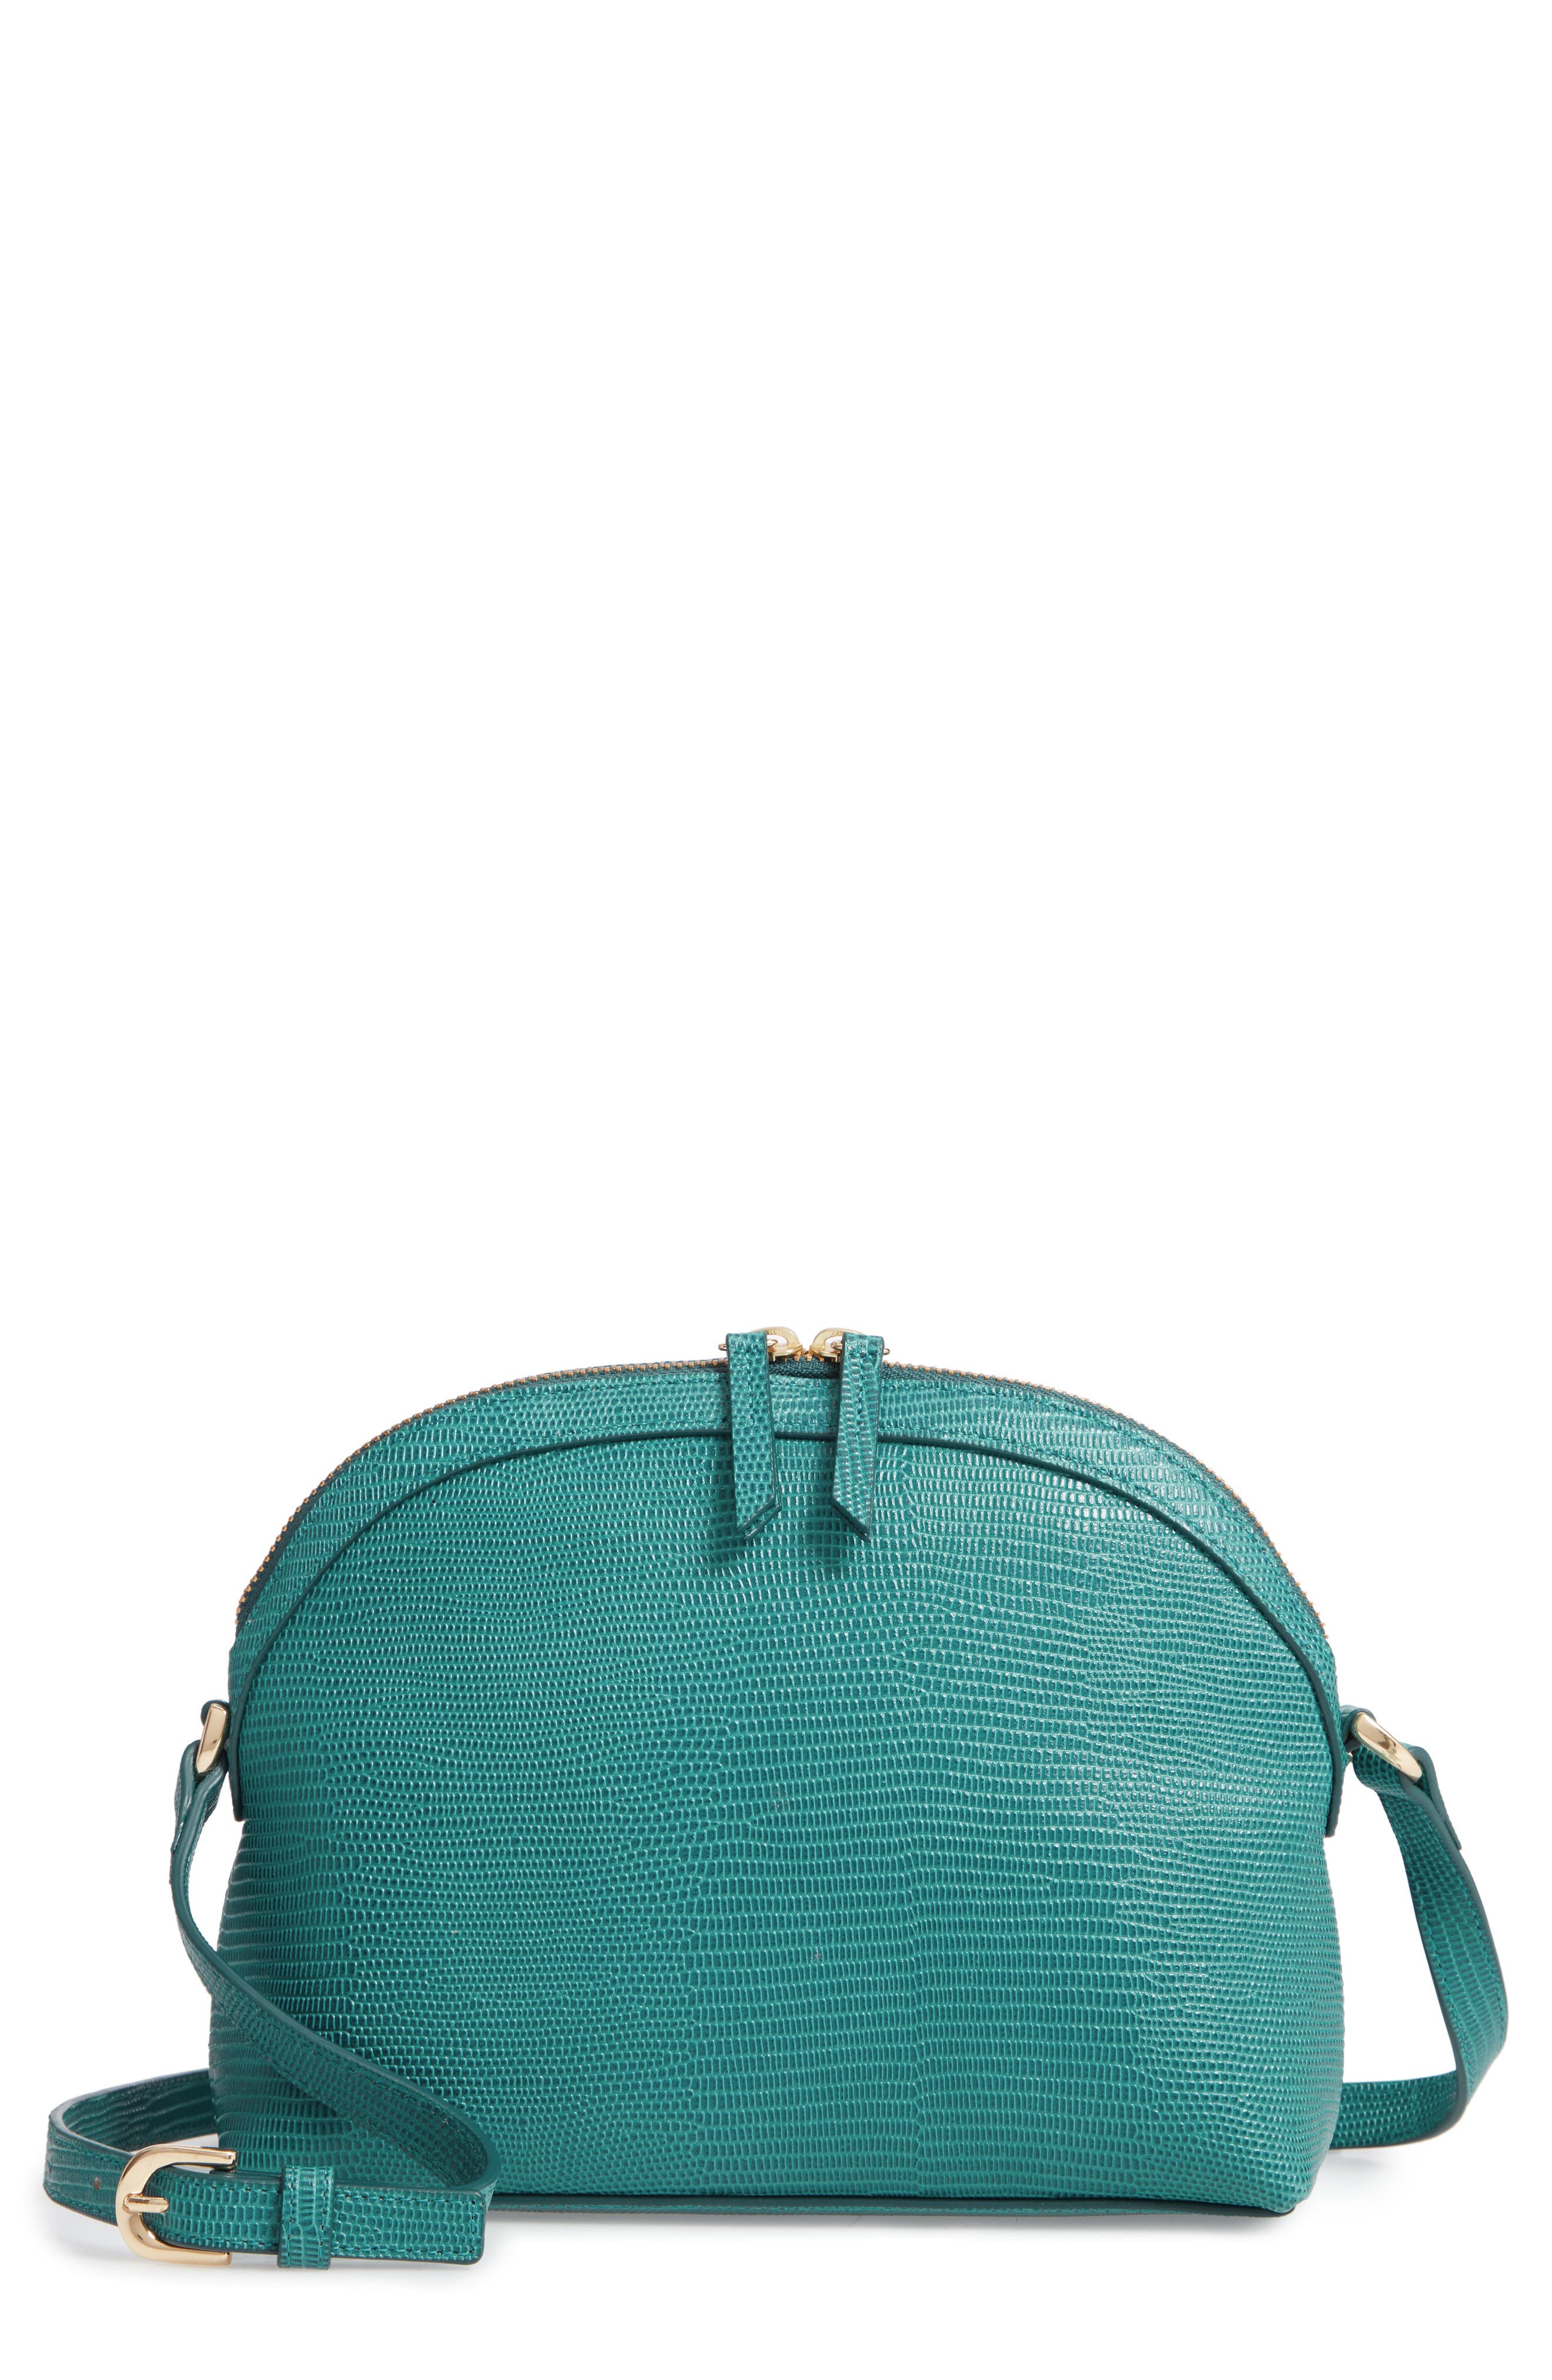 Isobel Half Moon Leather Crossbody Bag,                         Main,                         color, TEAL HARBOR